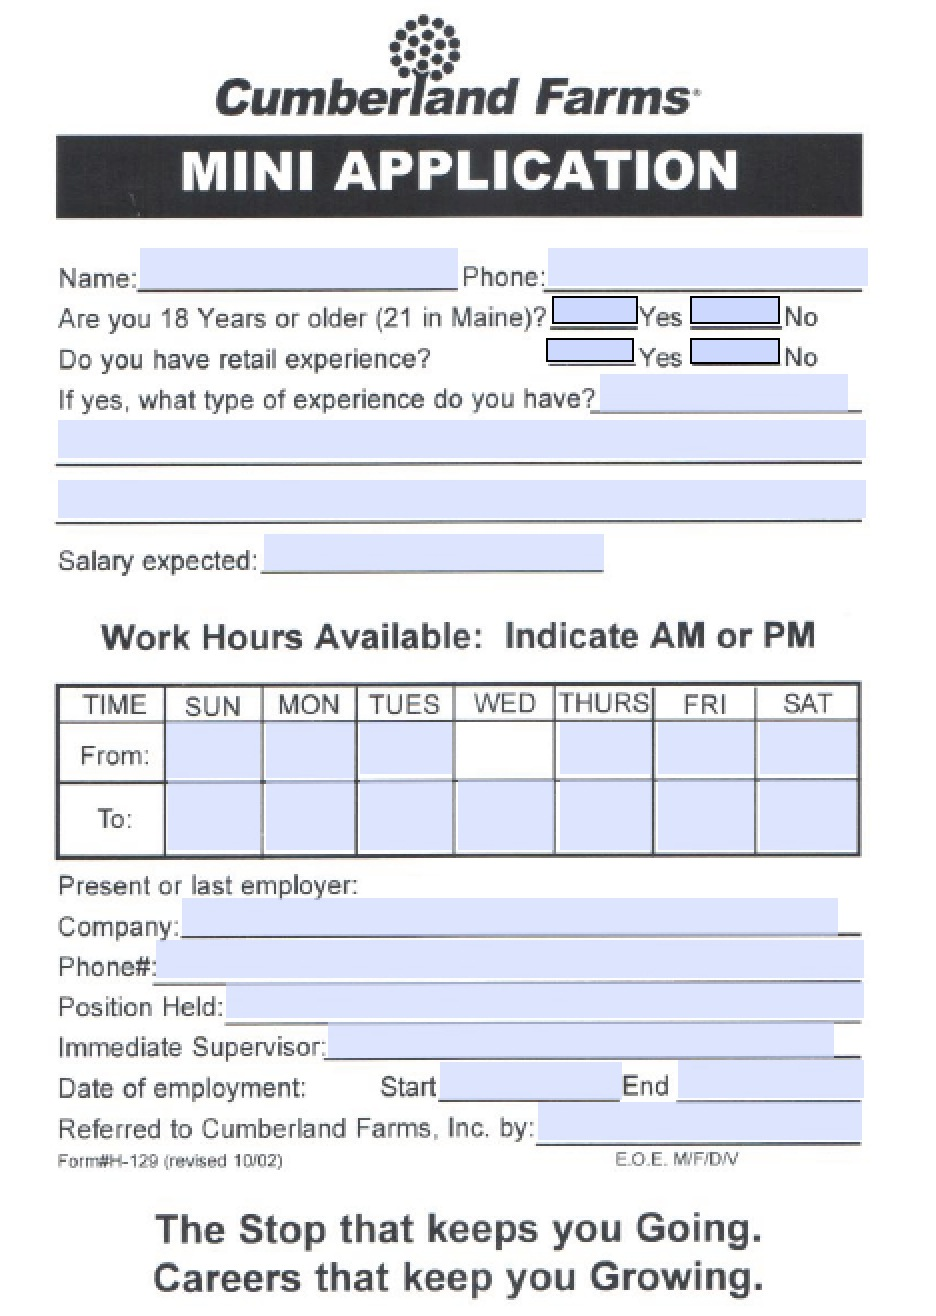 download cumberland farms job application form